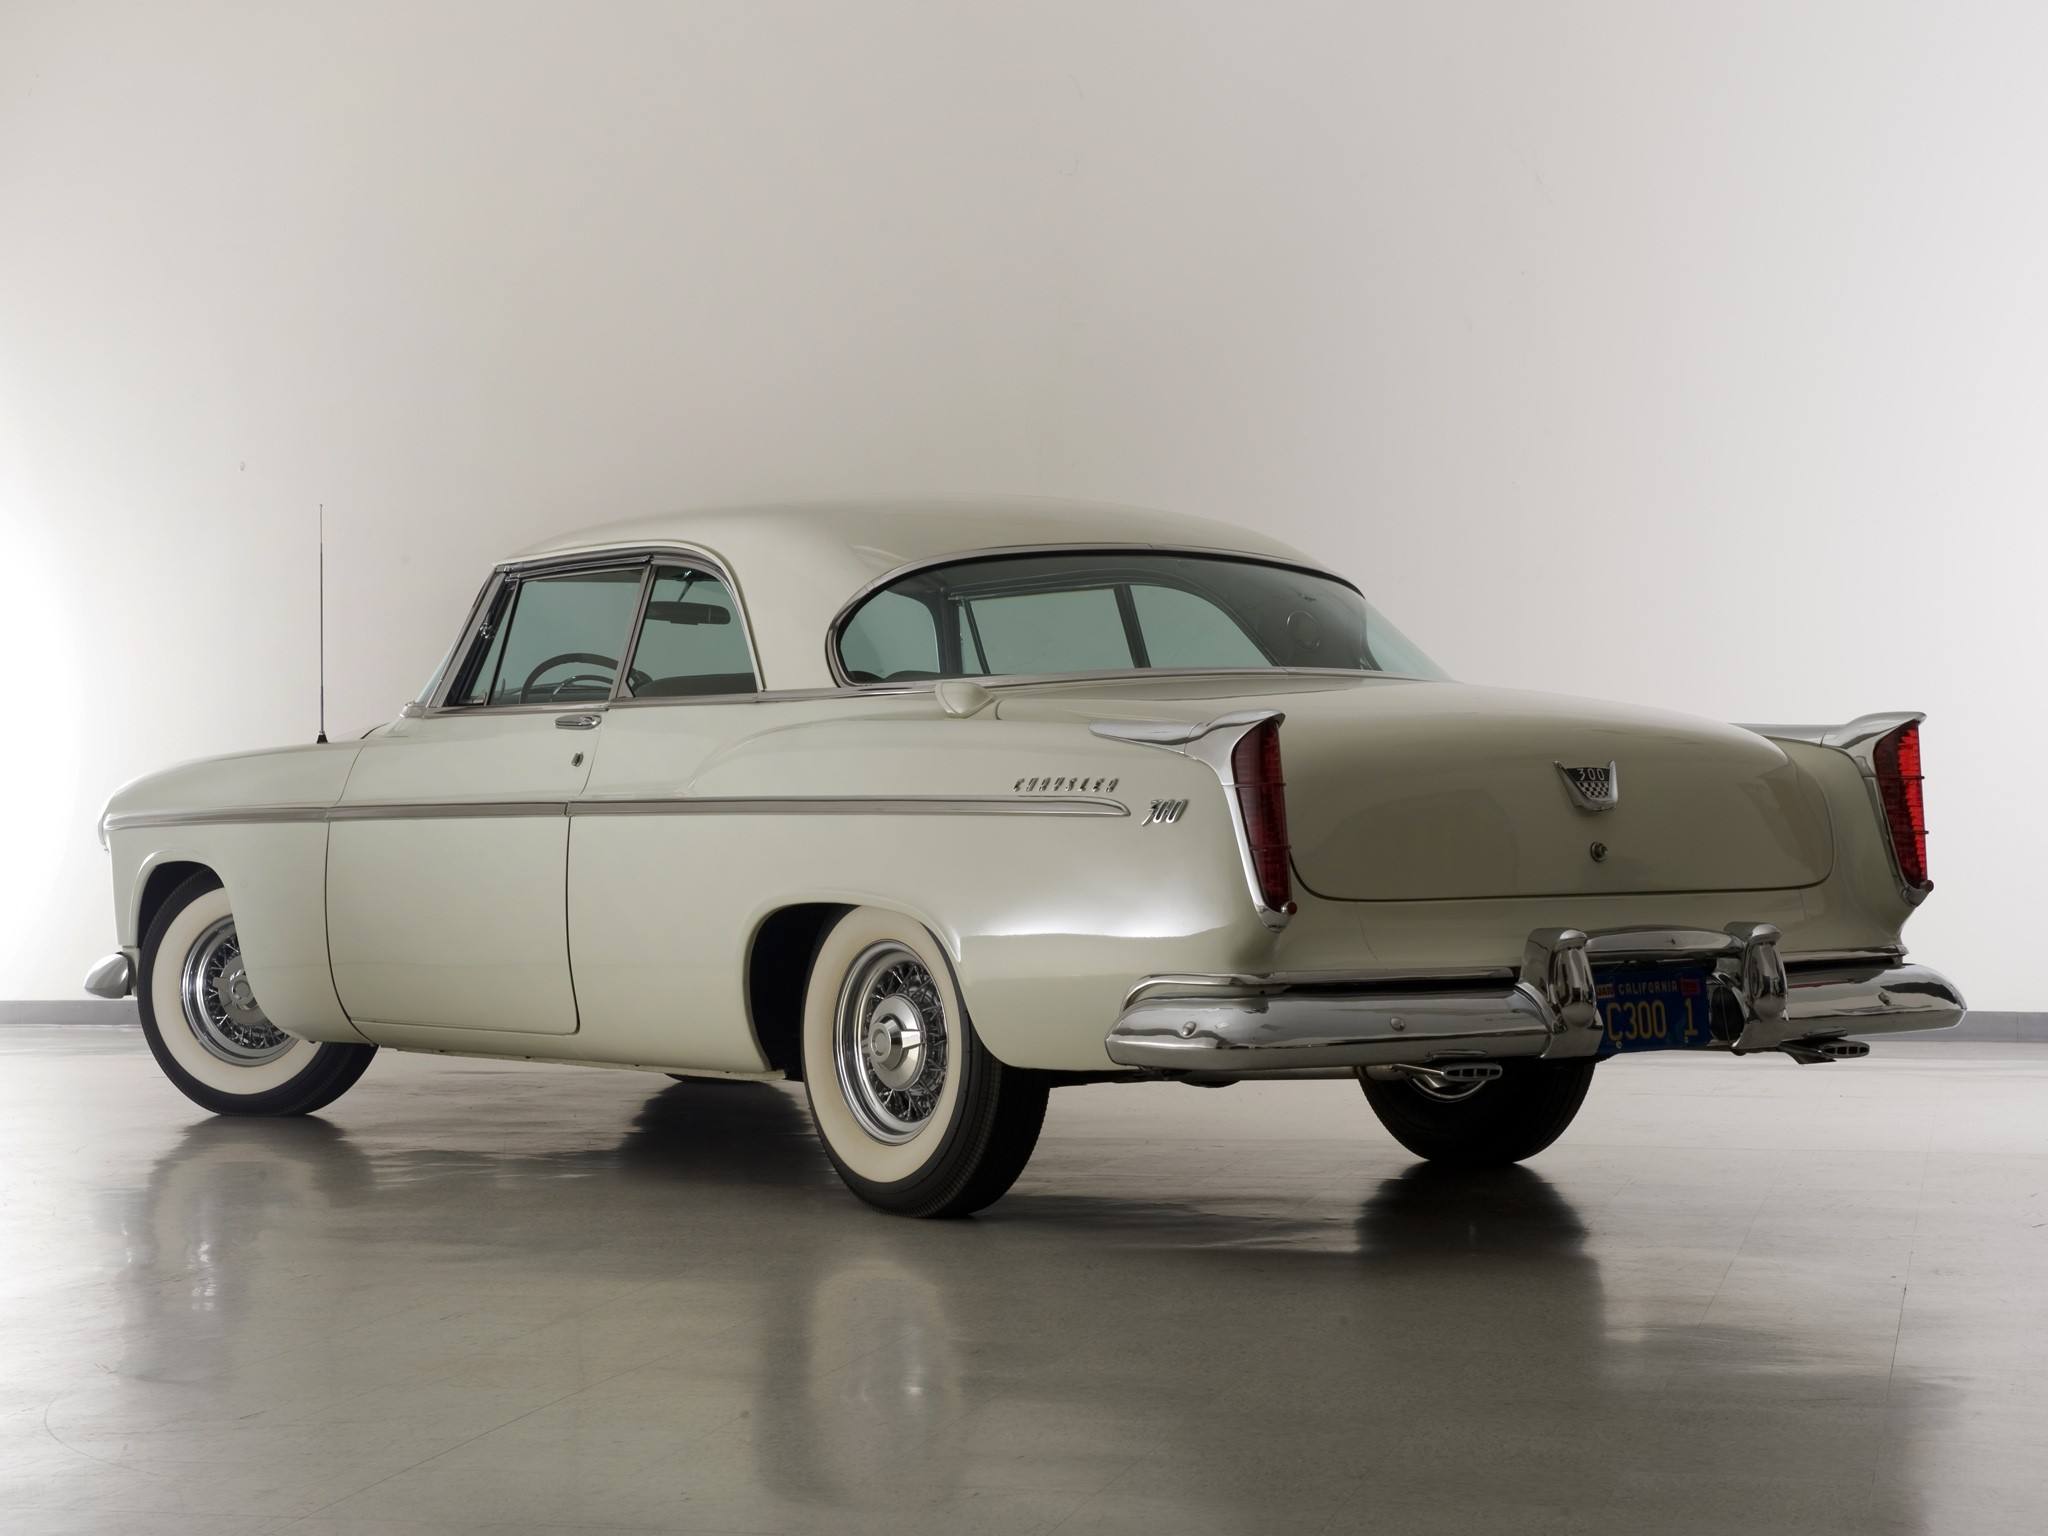 300 Hp Cars >> CHRYSLER 300 Sport Coupe specs & photos - 1955, 1956 - autoevolution